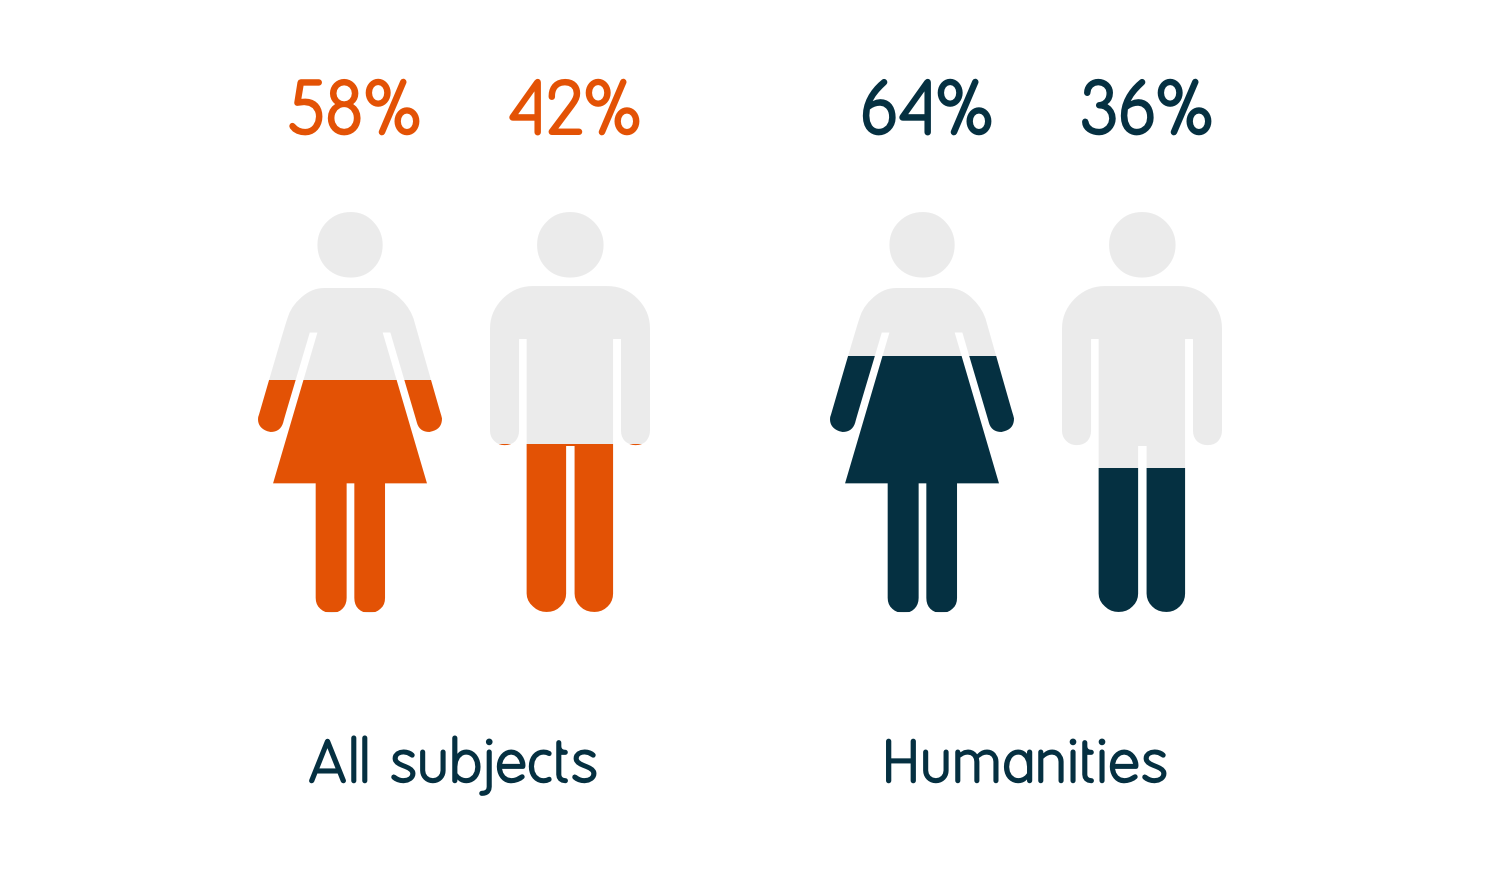 64% of humanities graduates identify as female and 36% as male, compared to 58% female and 42% male for all graduates.